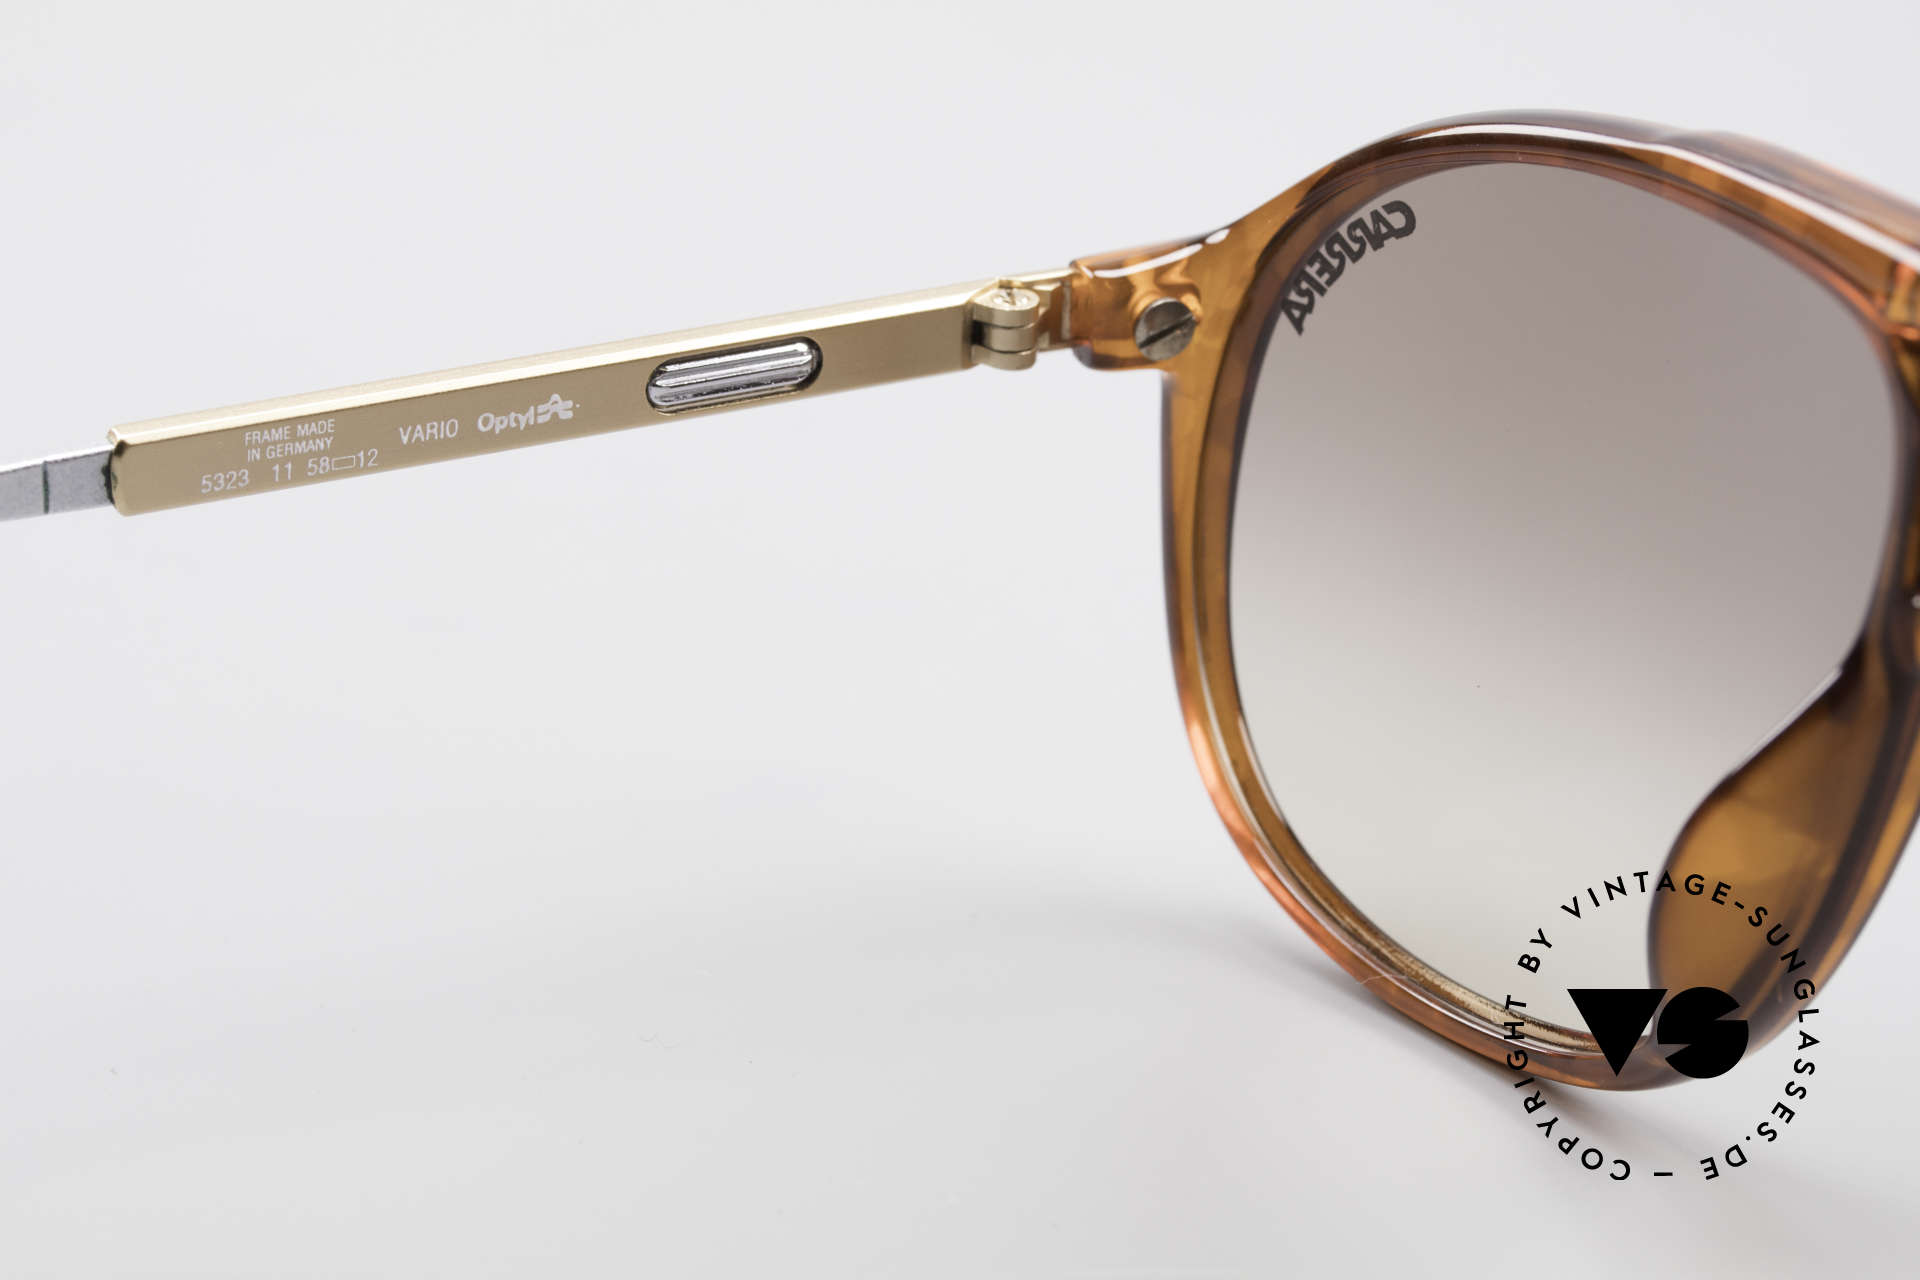 Carrera 5323 Adjustable Temples Vario 80's, Carrera sun lenses (100% UV protection) + case, Made for Men and Women